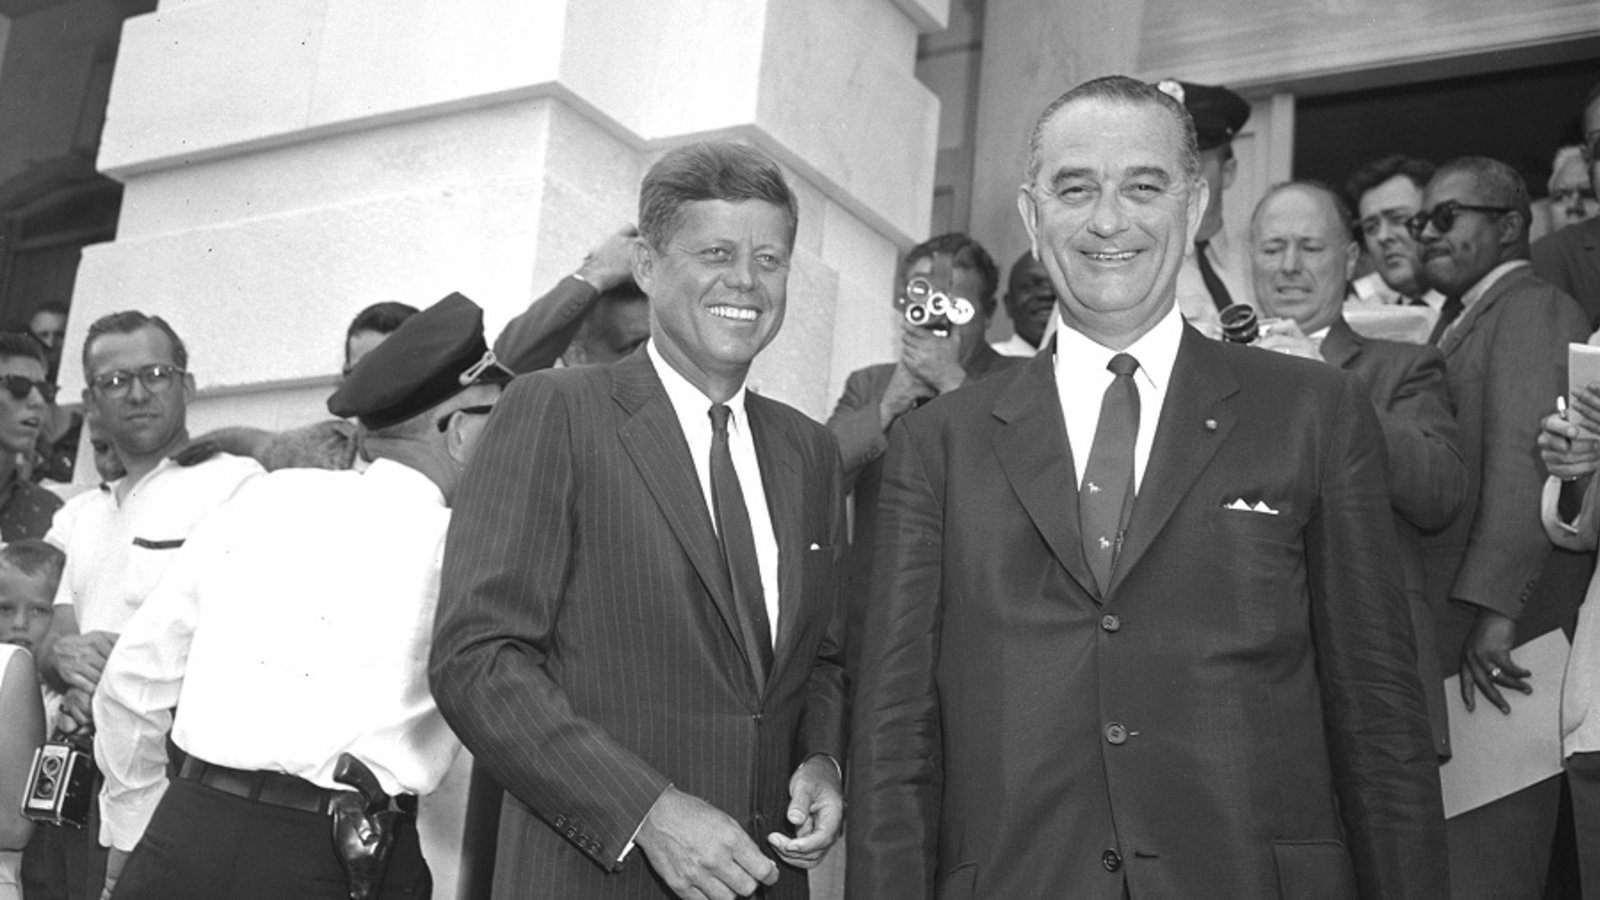 JFK & LBJ - A Time for Greatness